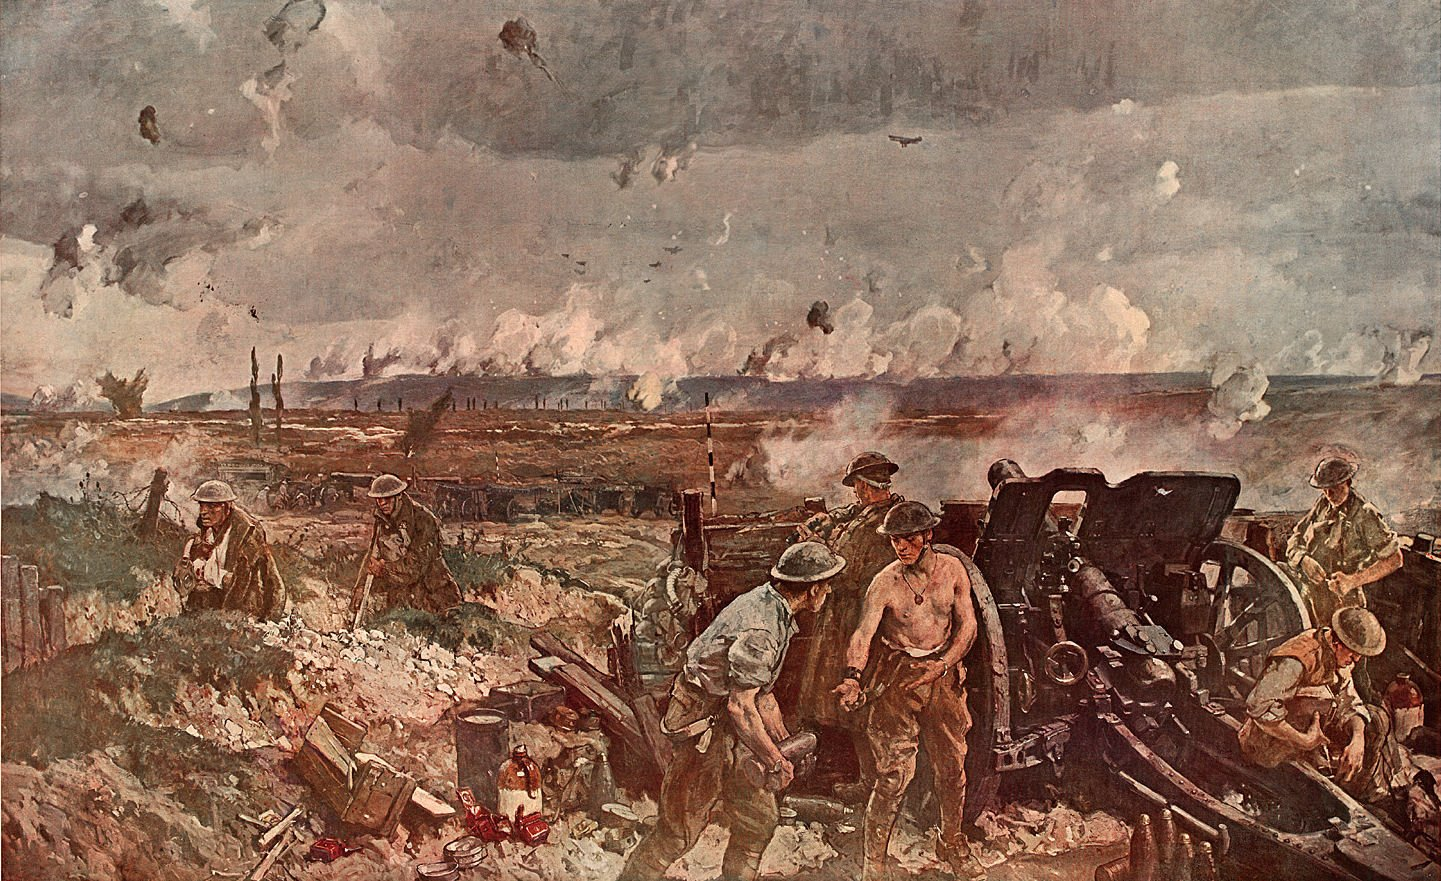 battle of passchendaele essay The battle of passchendaele or the third battle of ypres took place in 1917, from july 31st to november 6th it was part of the western front of the first world war.